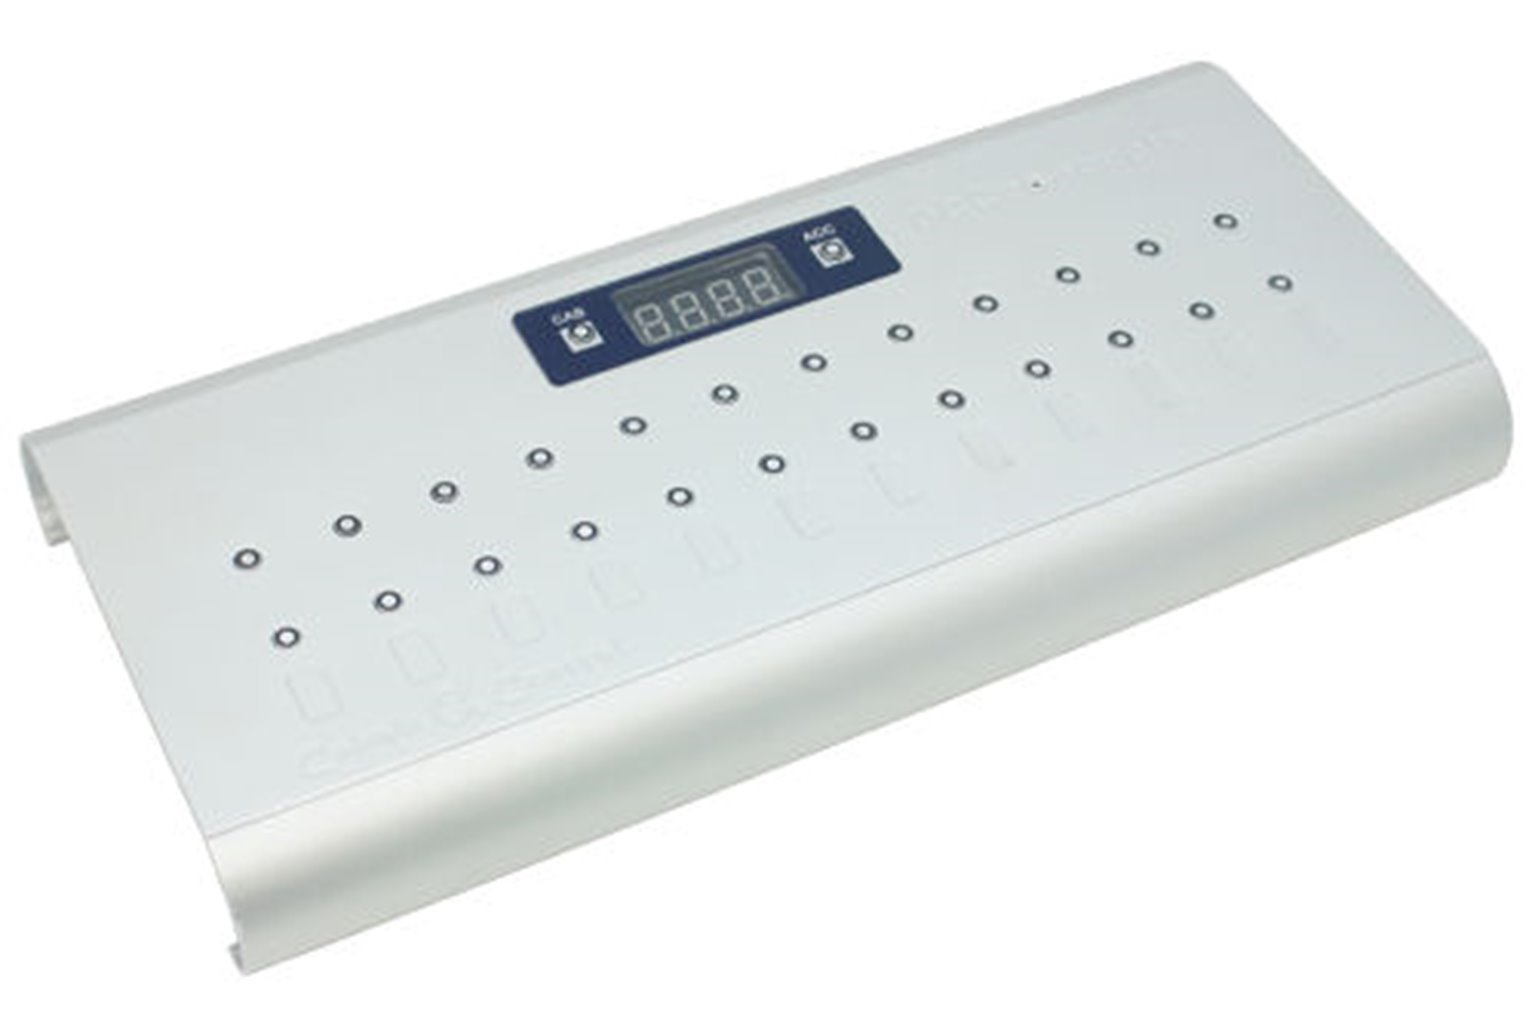 Cobalt Alpha Central Integrated 12 Way Digital Switch